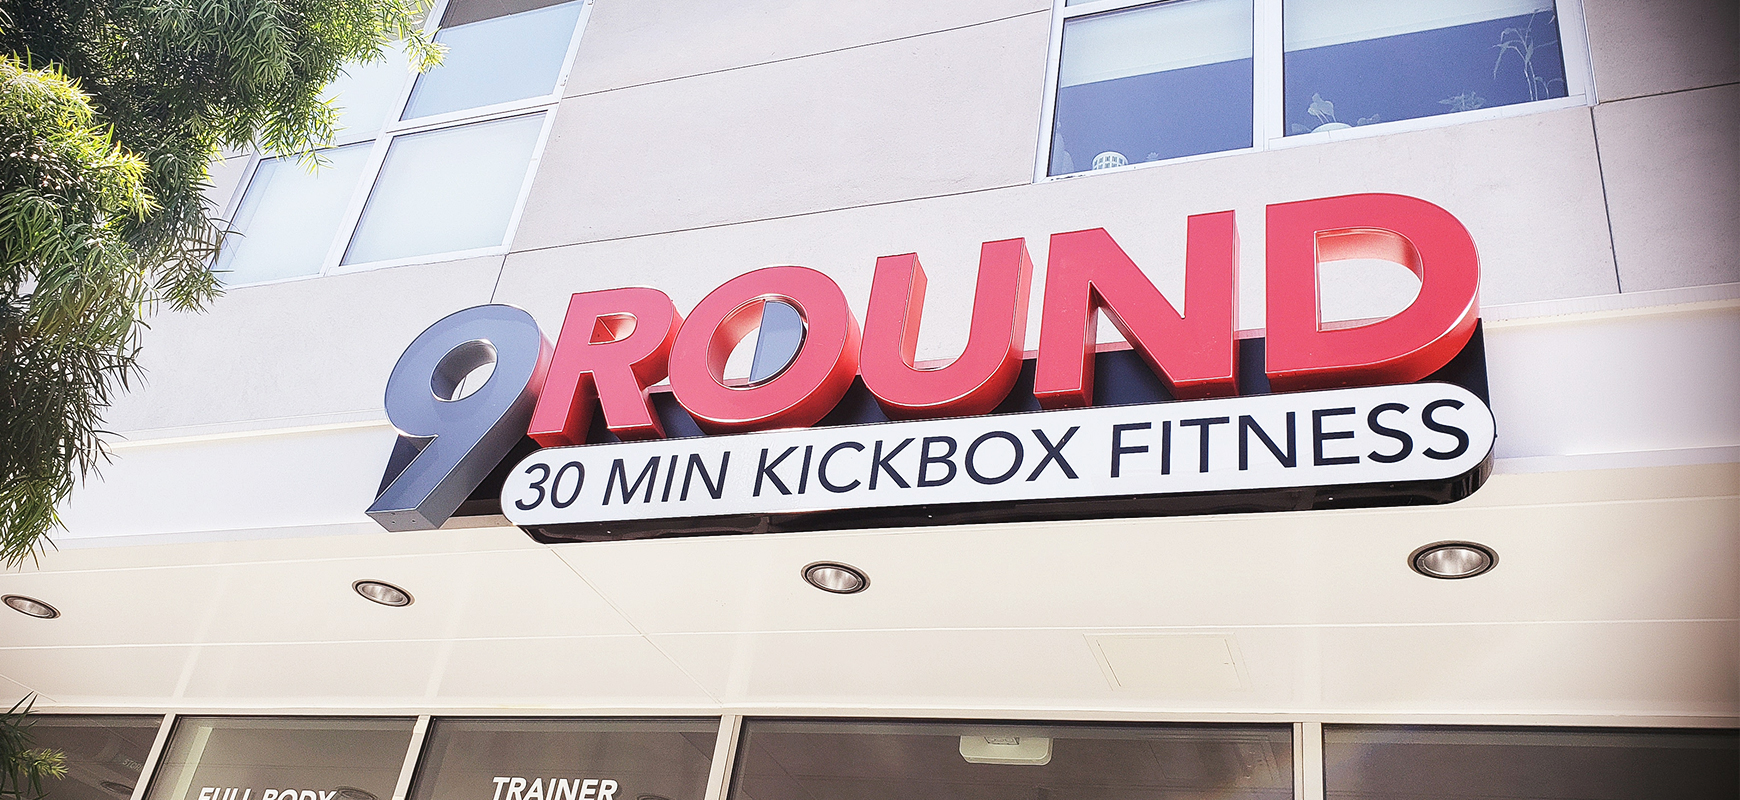 9 Round channel letters in red color displaying the company name made of aluminum and acrylic for gym outdoor branding